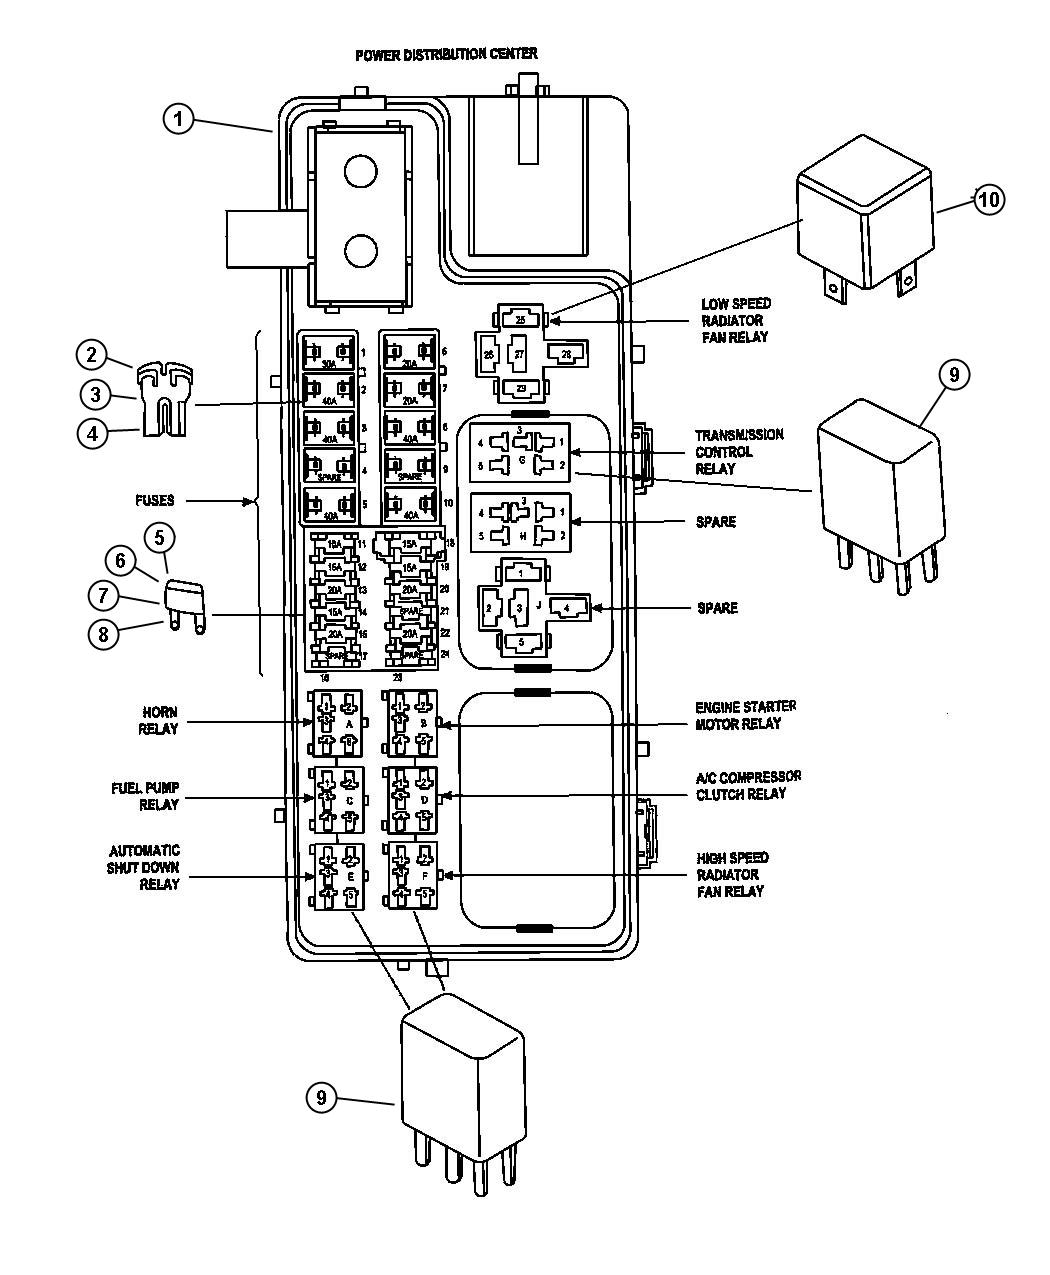 further Curso Cajas Empaque Monos Canastas Decoradas Moldes Imprimir P 312 further Typical Trailer Wiring Diagramcircuit further Question 6890 further Showthread. on 2005 dodge caravan power door lock fuse